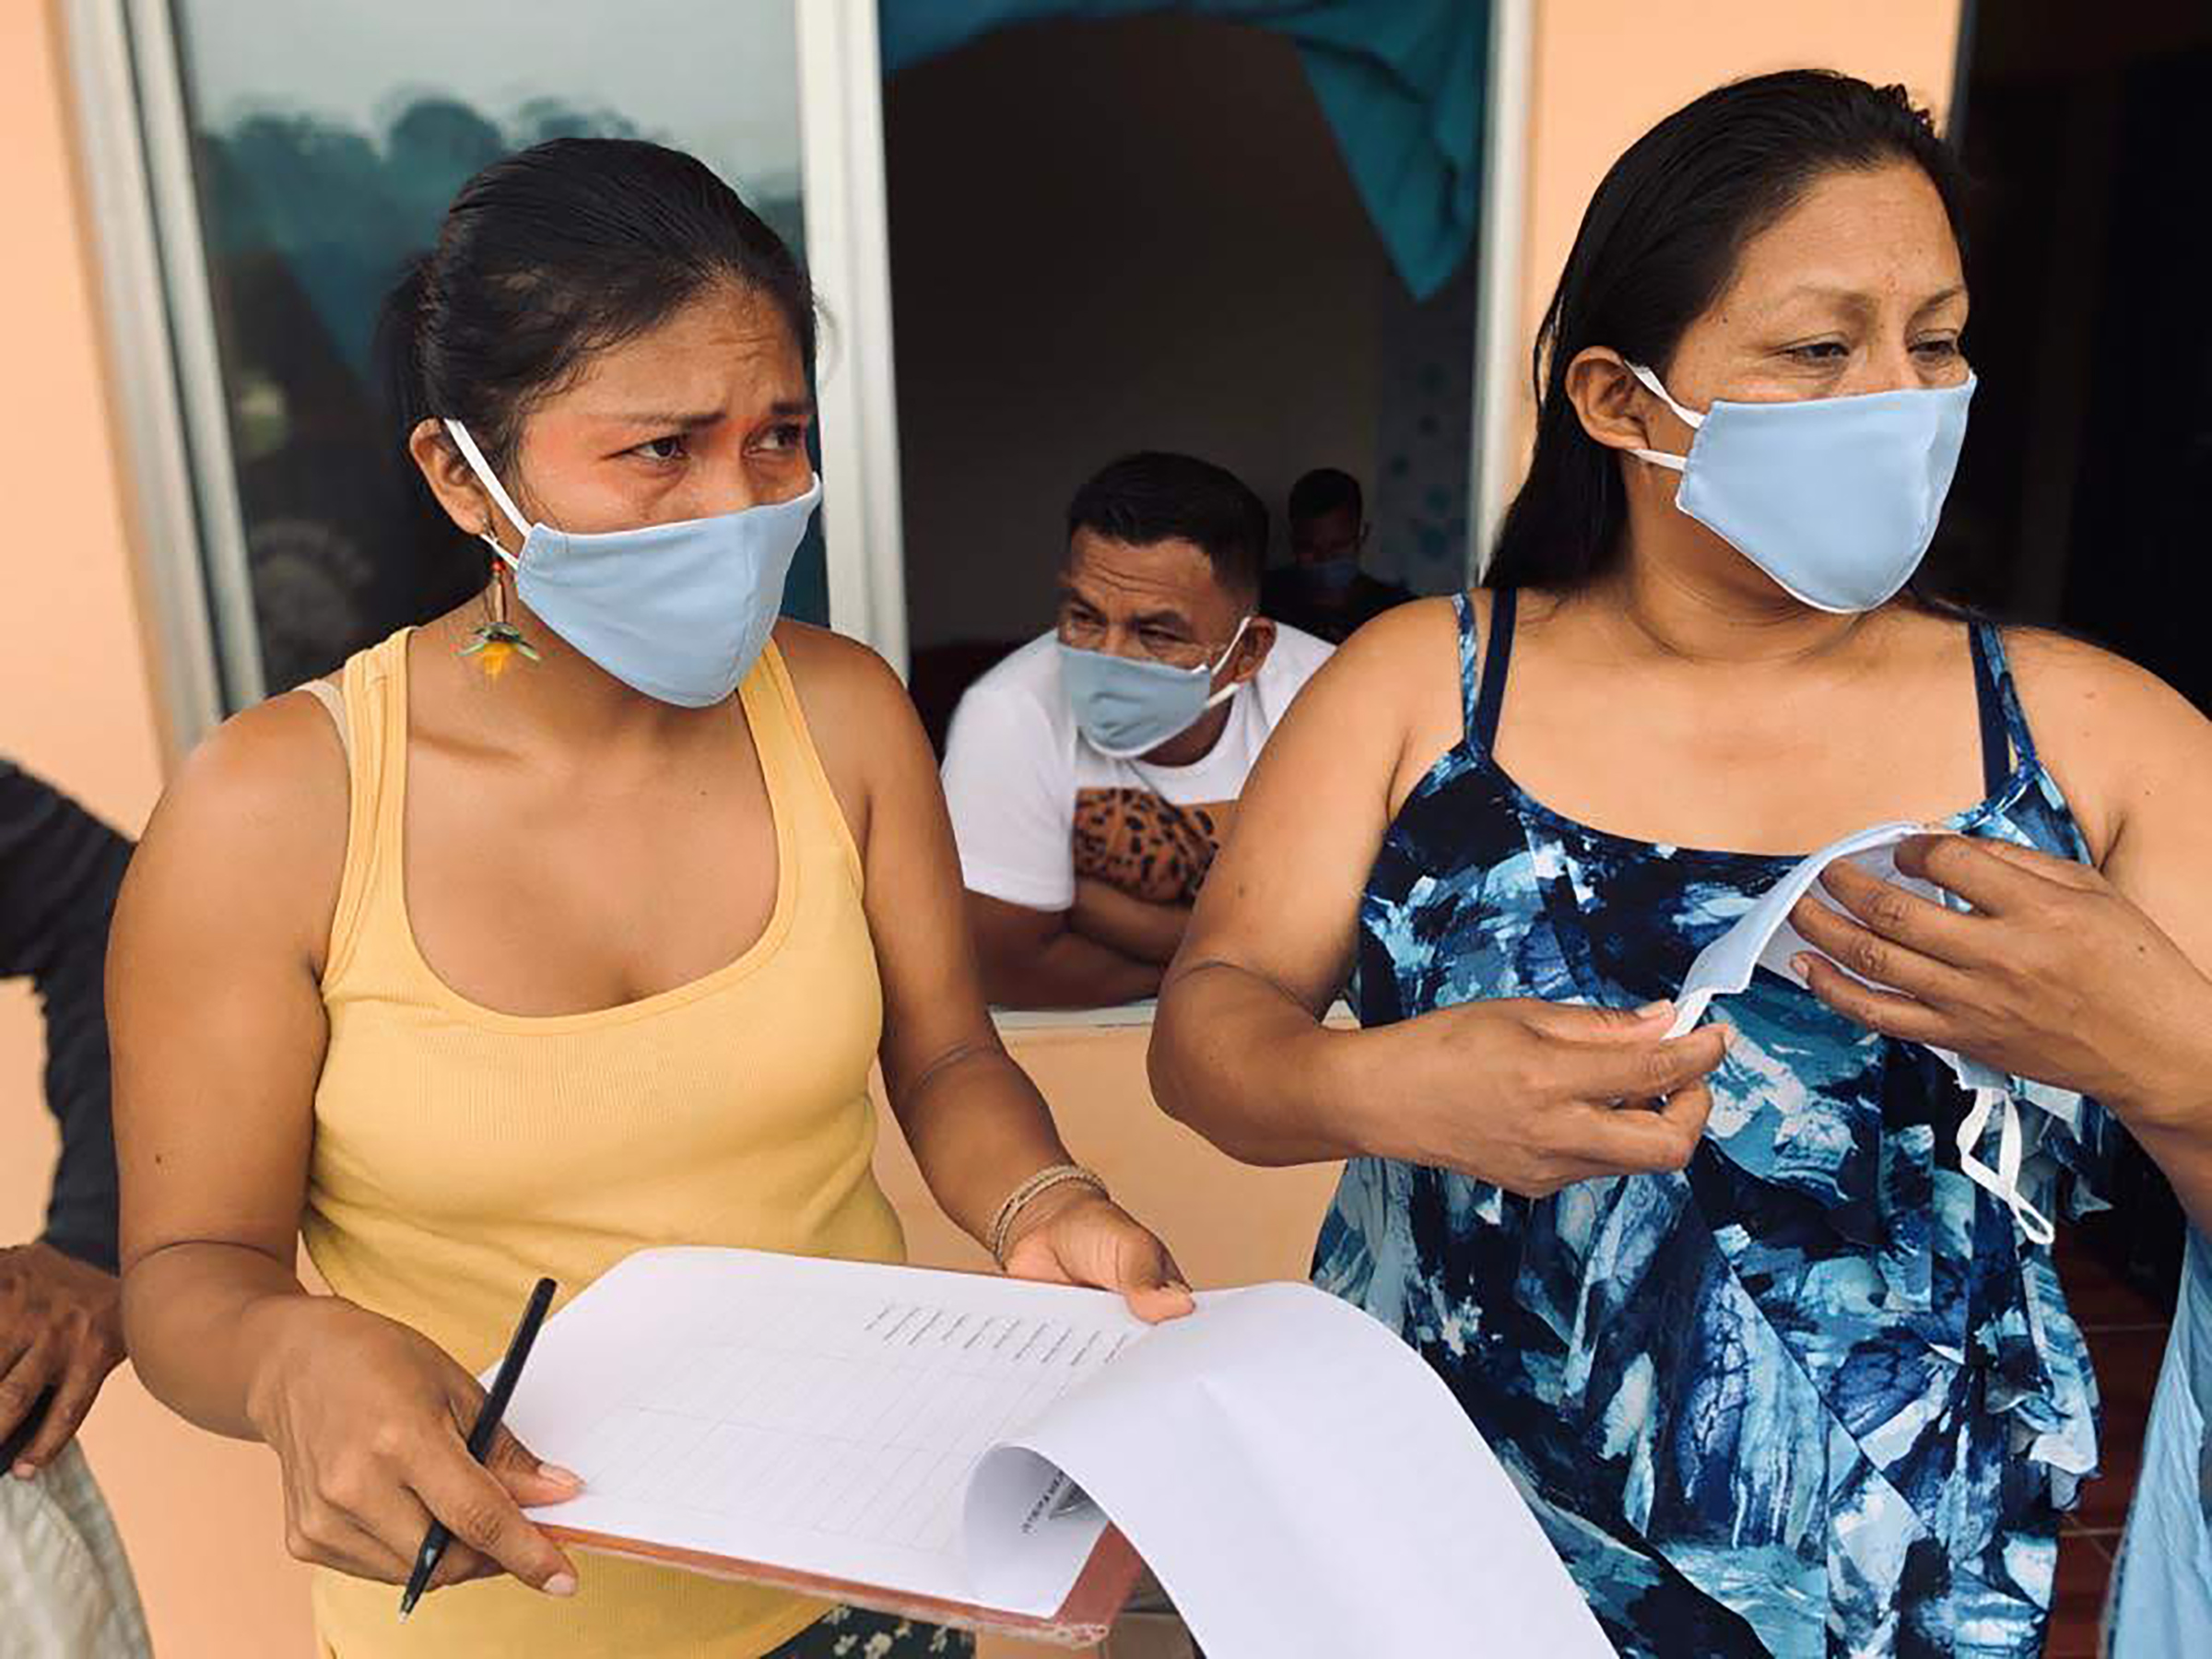 As the COVID-19 pandemic reaches the edge of indigenous territories in the Ecuadorian Amazon, Nemonte Nenquimo (left) and other Waorani leaders have remained in frontier towns to help organize preventative measures for their communities.